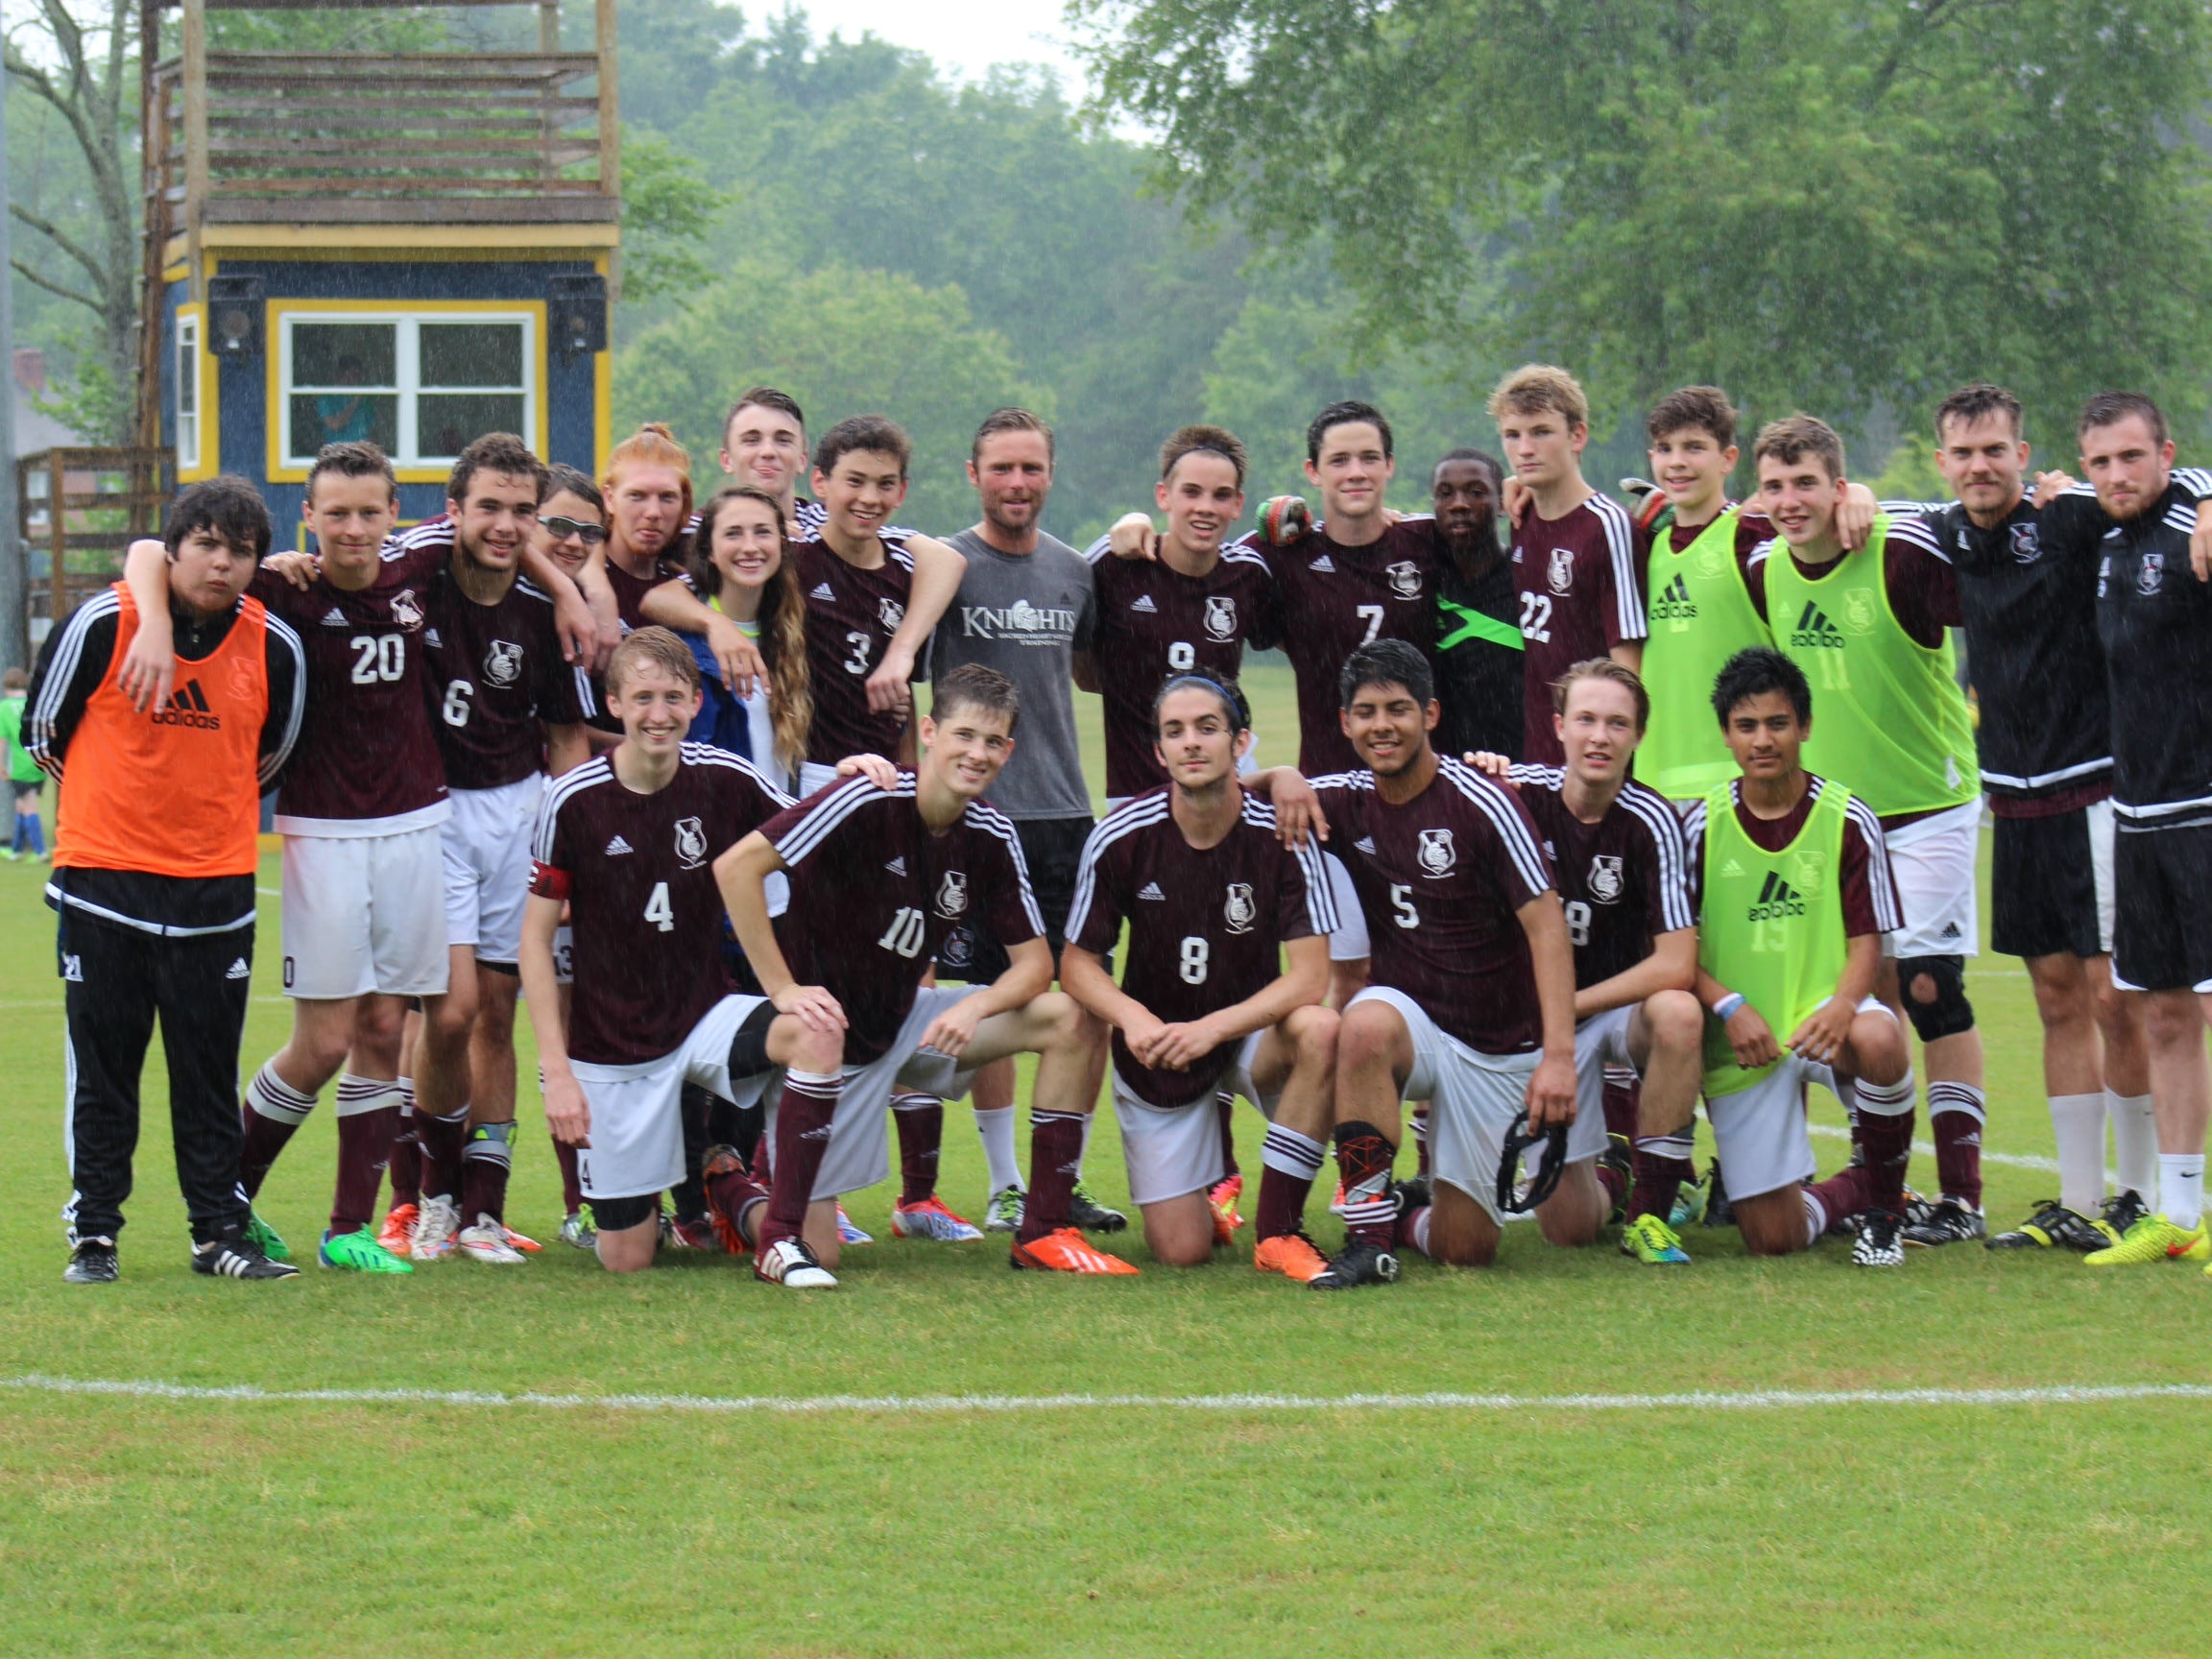 The soccer team at Sacred Heart of Jesus High is the first boys' team in school history to make it to a state tournament.